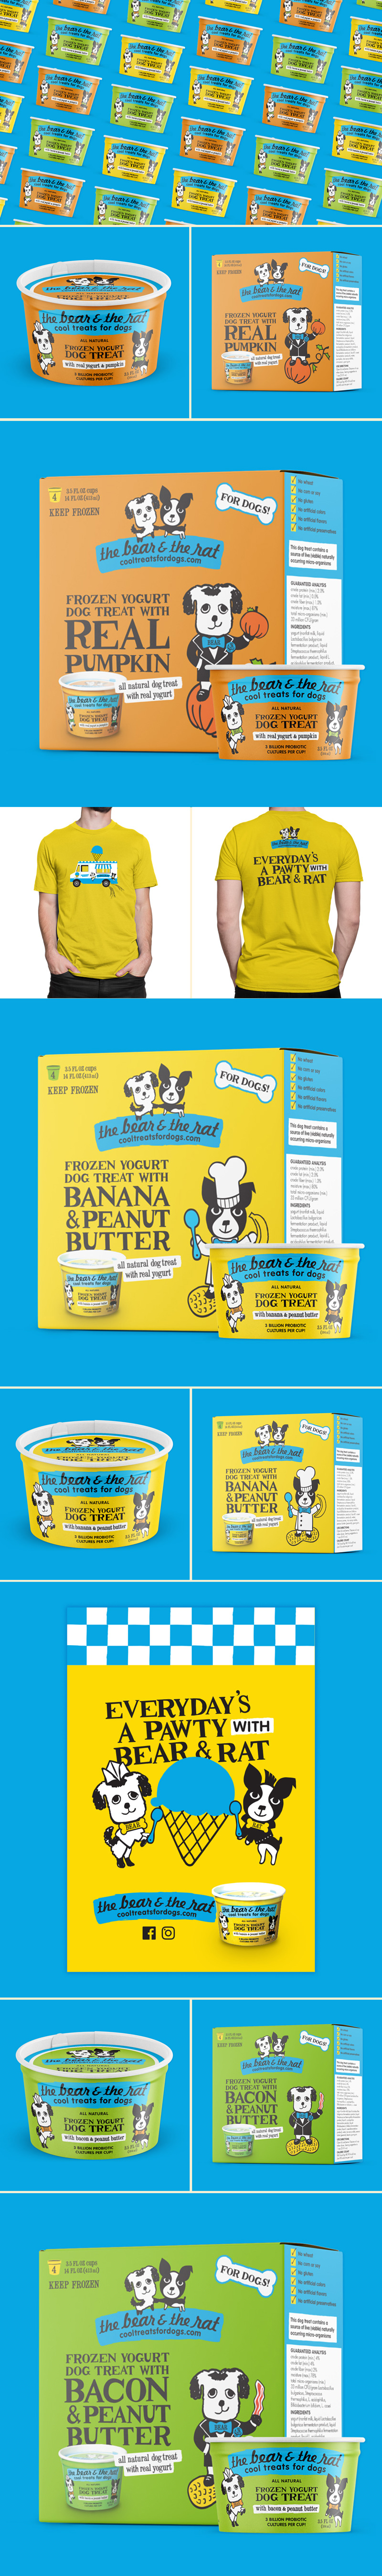 The Bear and The Rat Frozen Yogurt for dogs packaging design by Riddle Design Co.